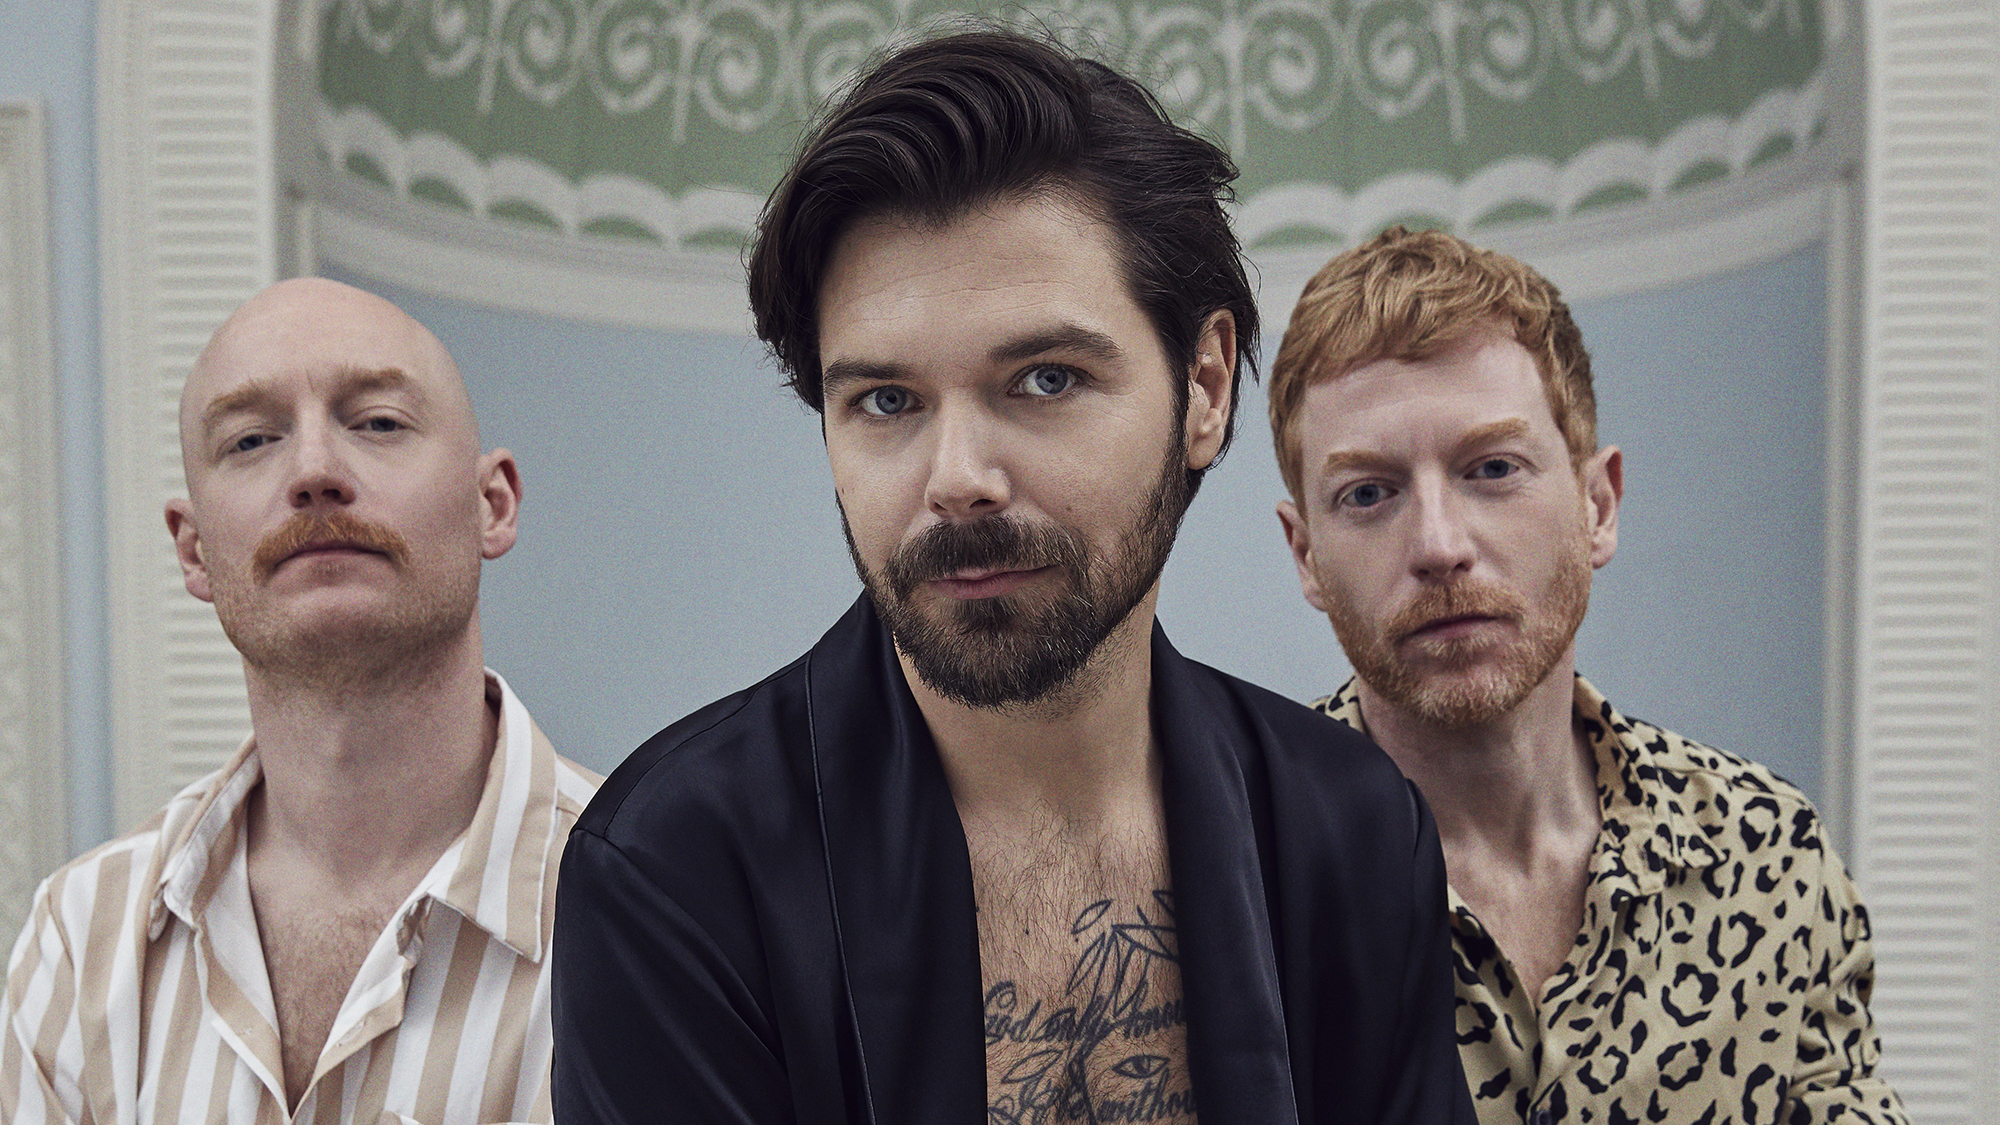 Biffy Clyro To Donate Proceeds From 'Space' To Arts Charity